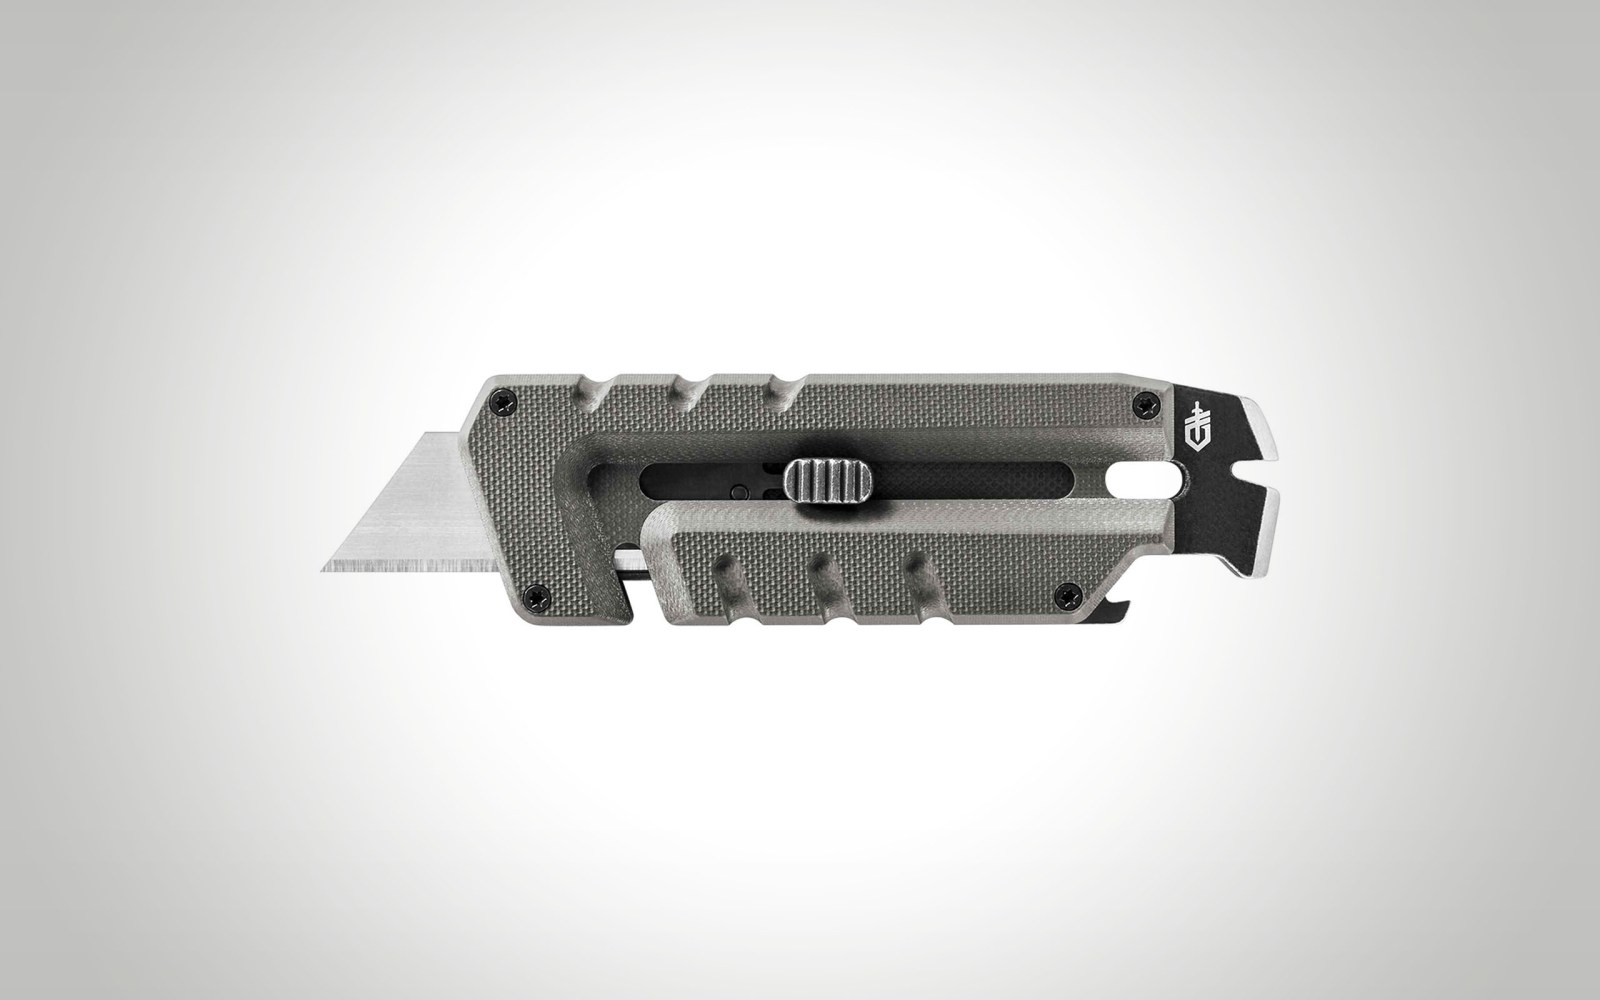 Gerber Prybrid Utility Tactical Grey Pocketable Multi-Tool